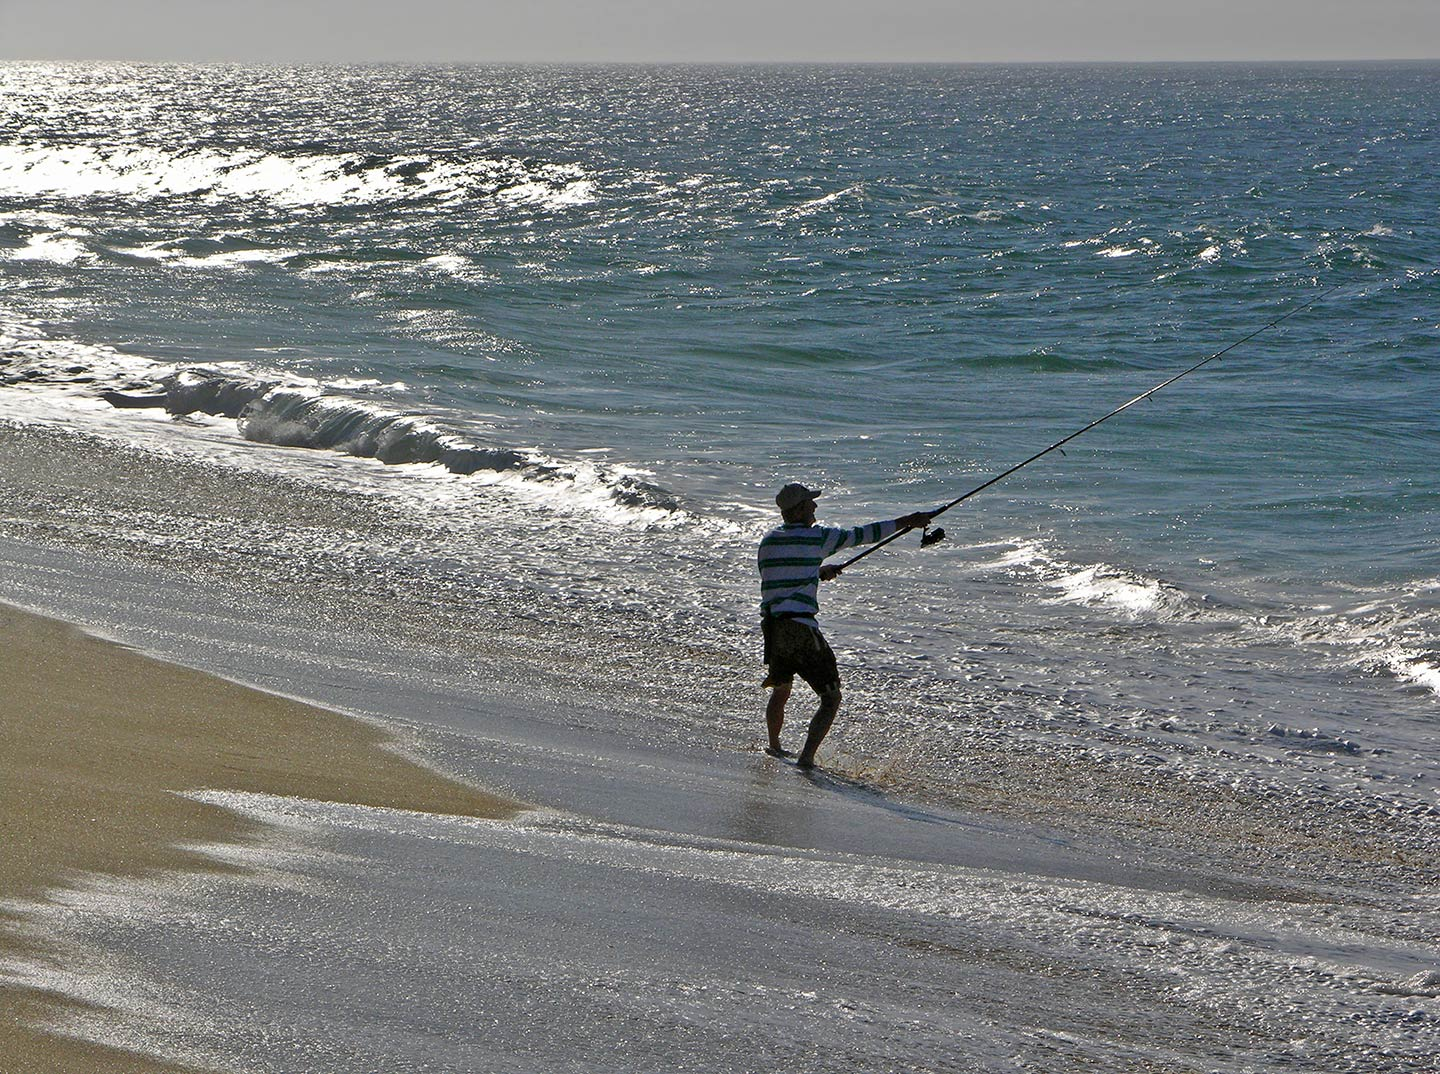 A man casts from the beach in Baja California Sur